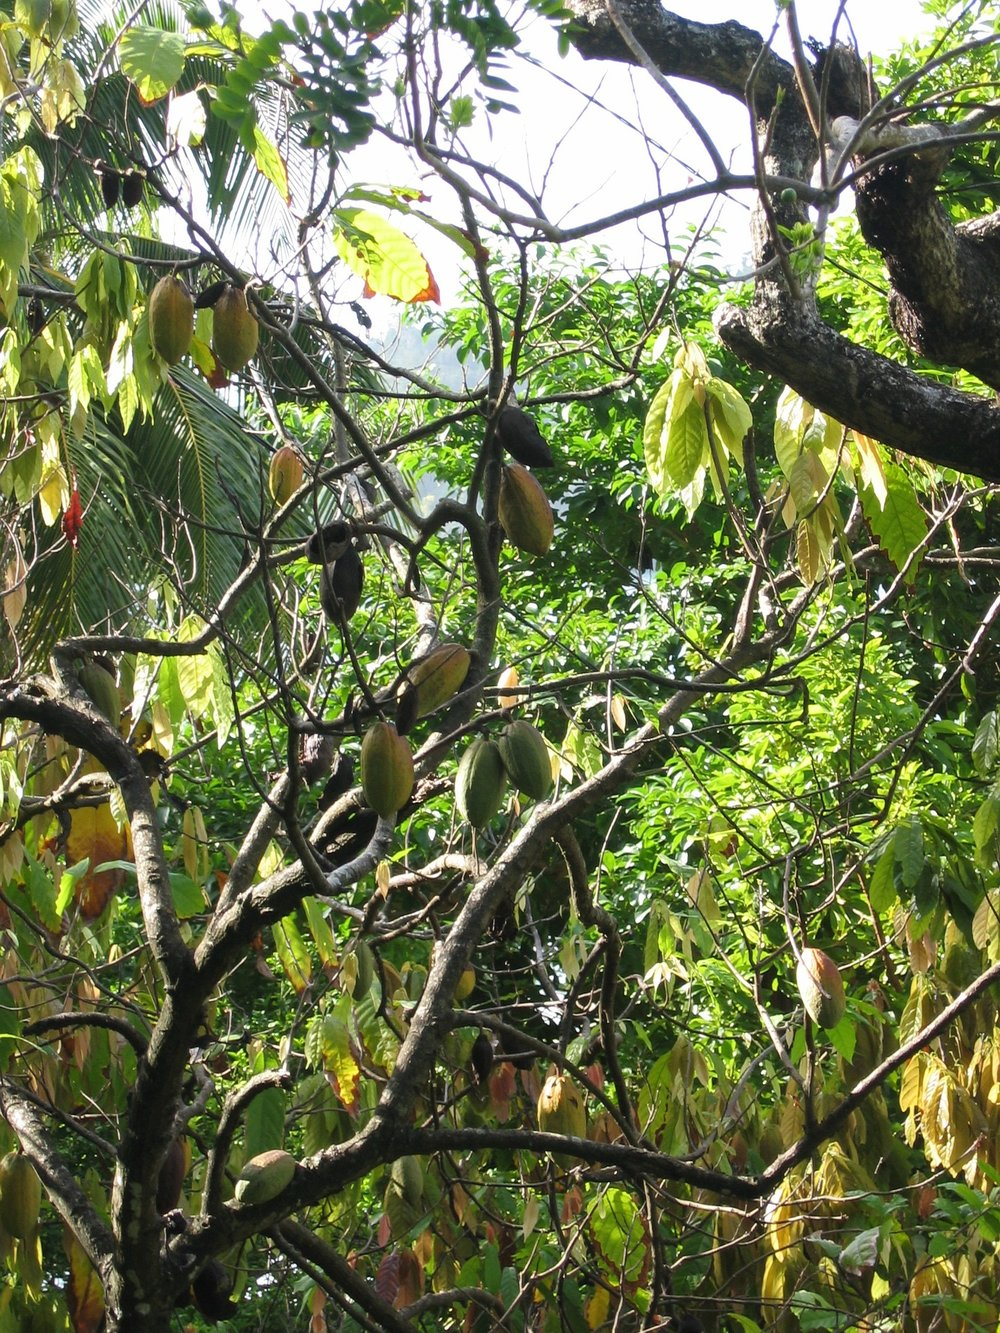 Cacao trees loaded with pods